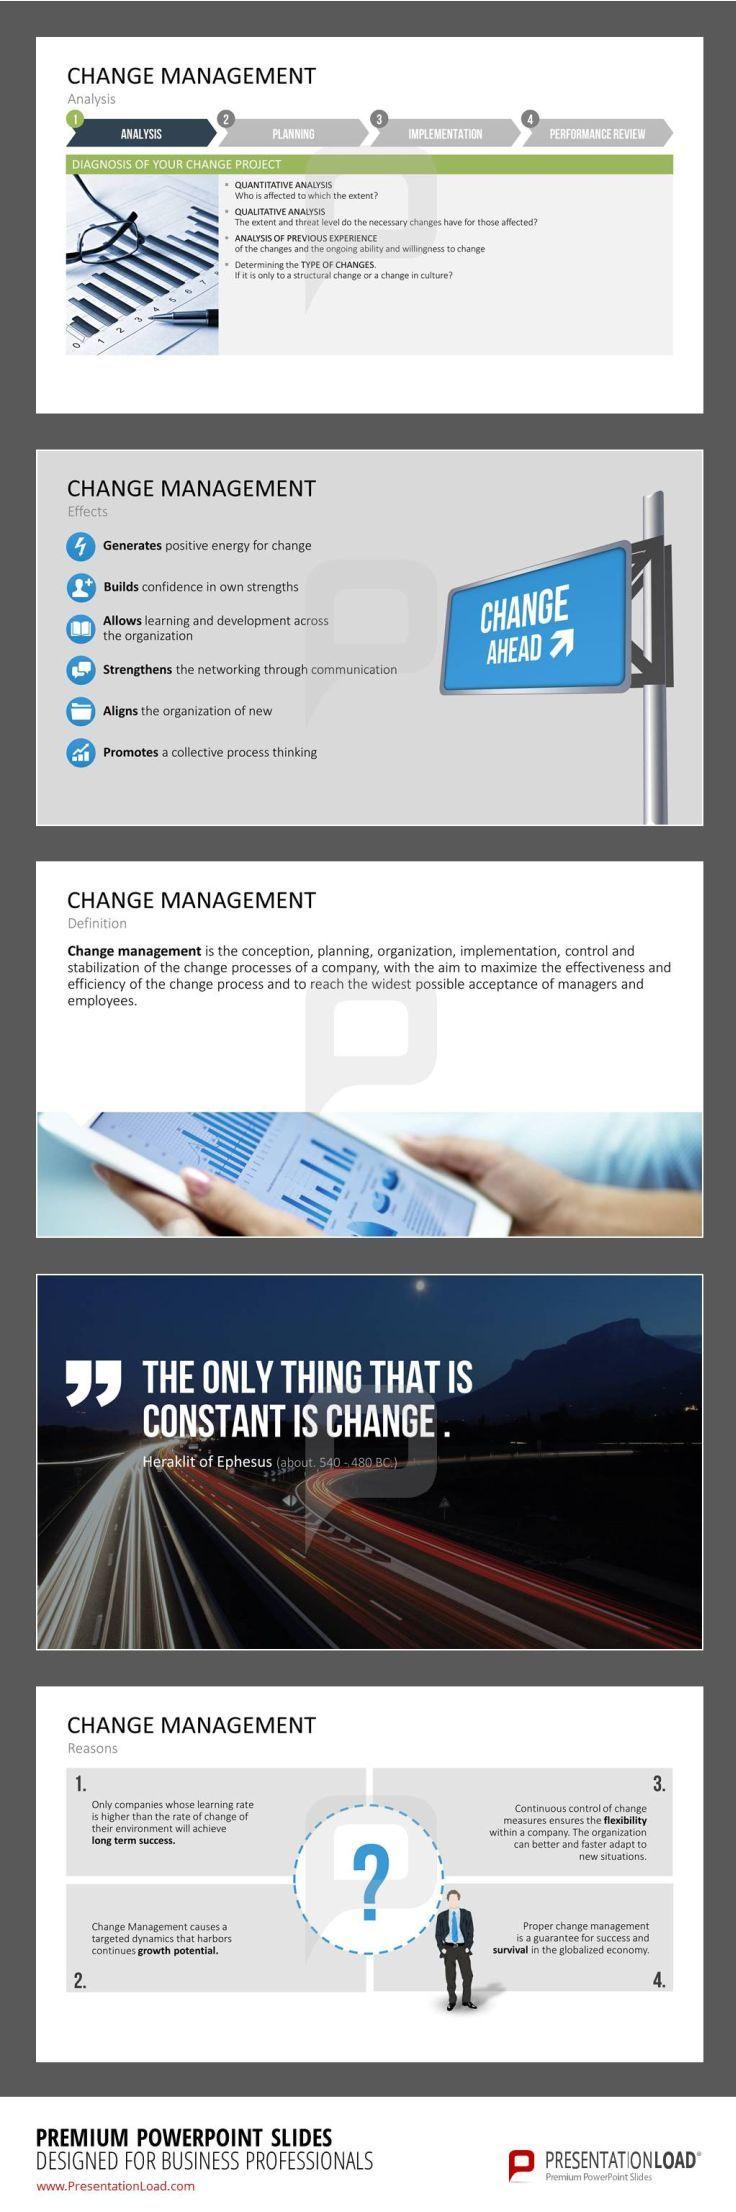 changes affecting managers